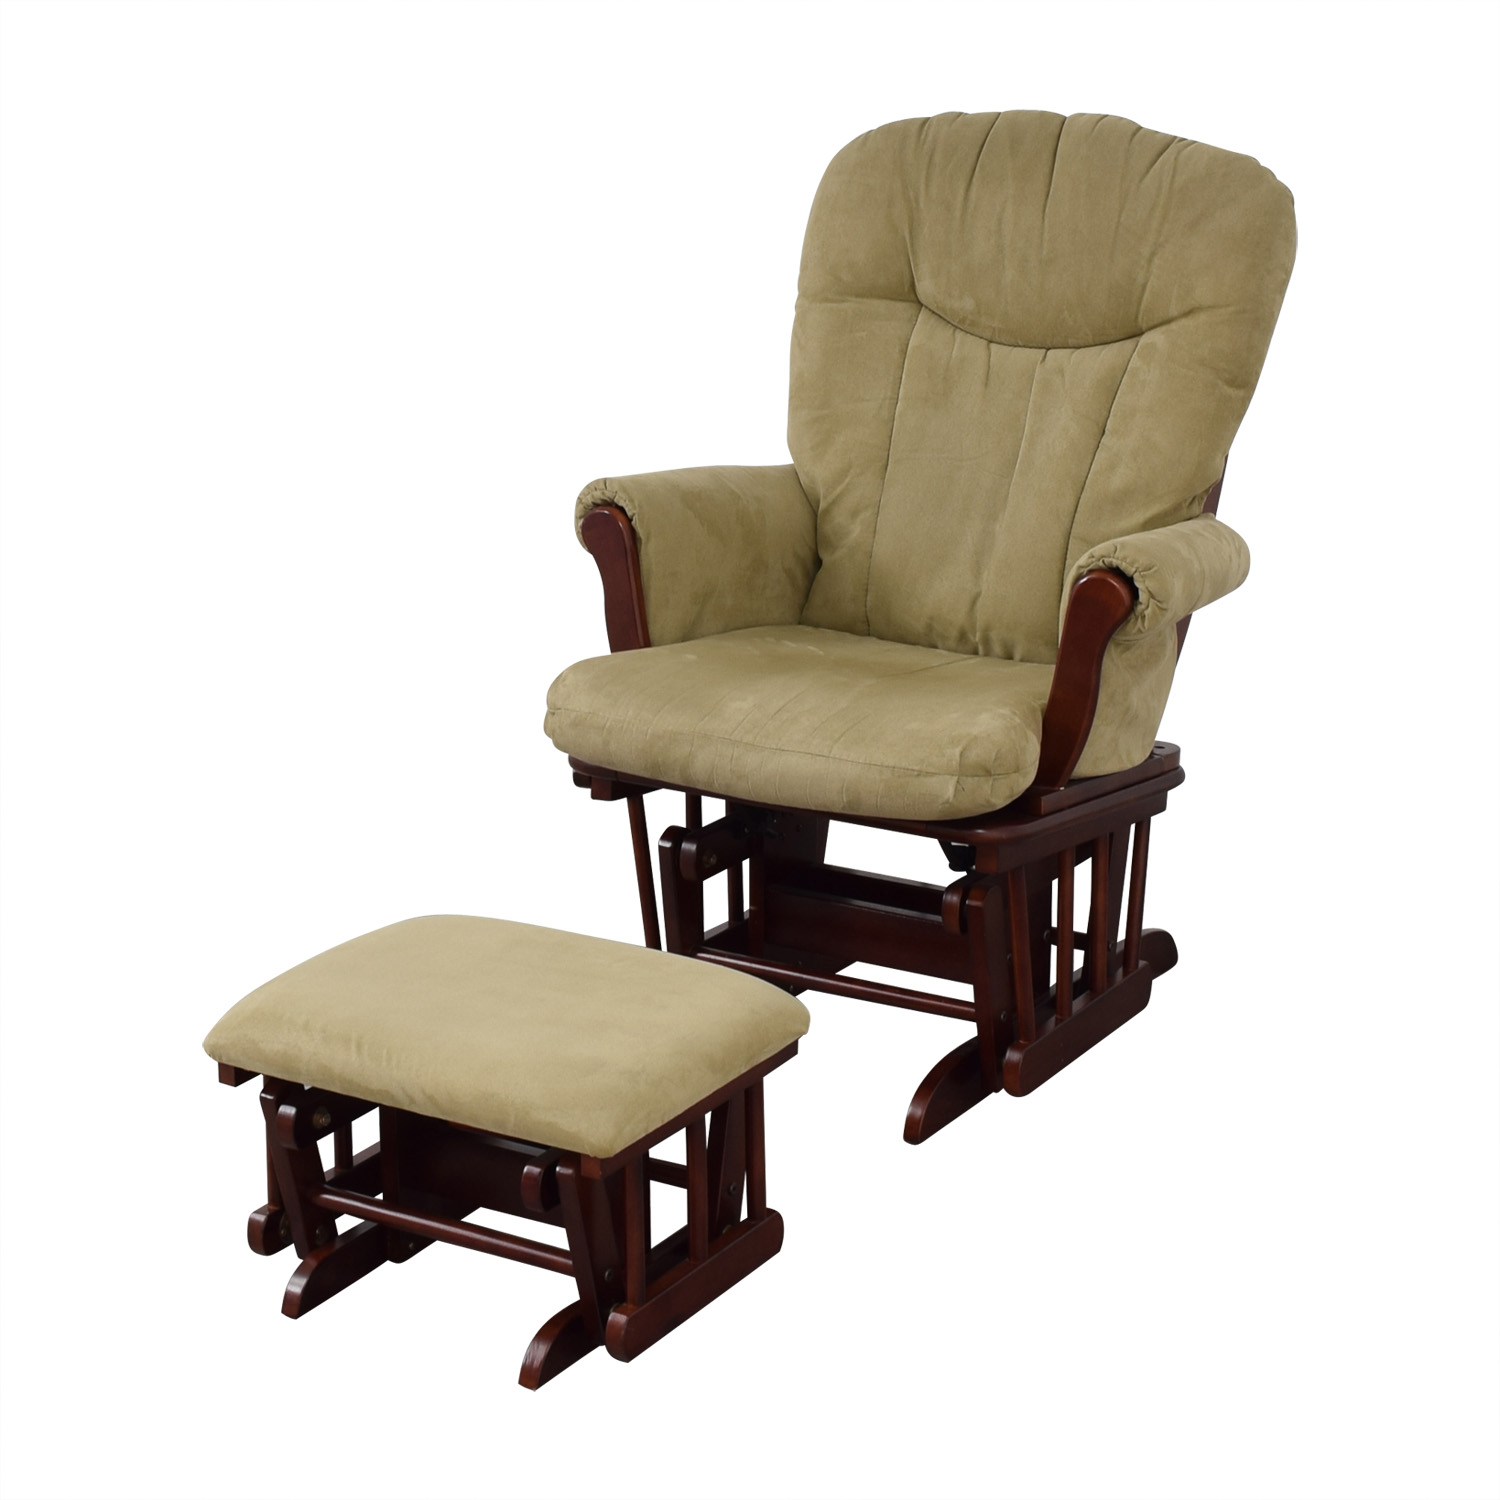 87 Off Shermag Buy Buy Baby Tan Rocking Chair And Foot Rest Chairs